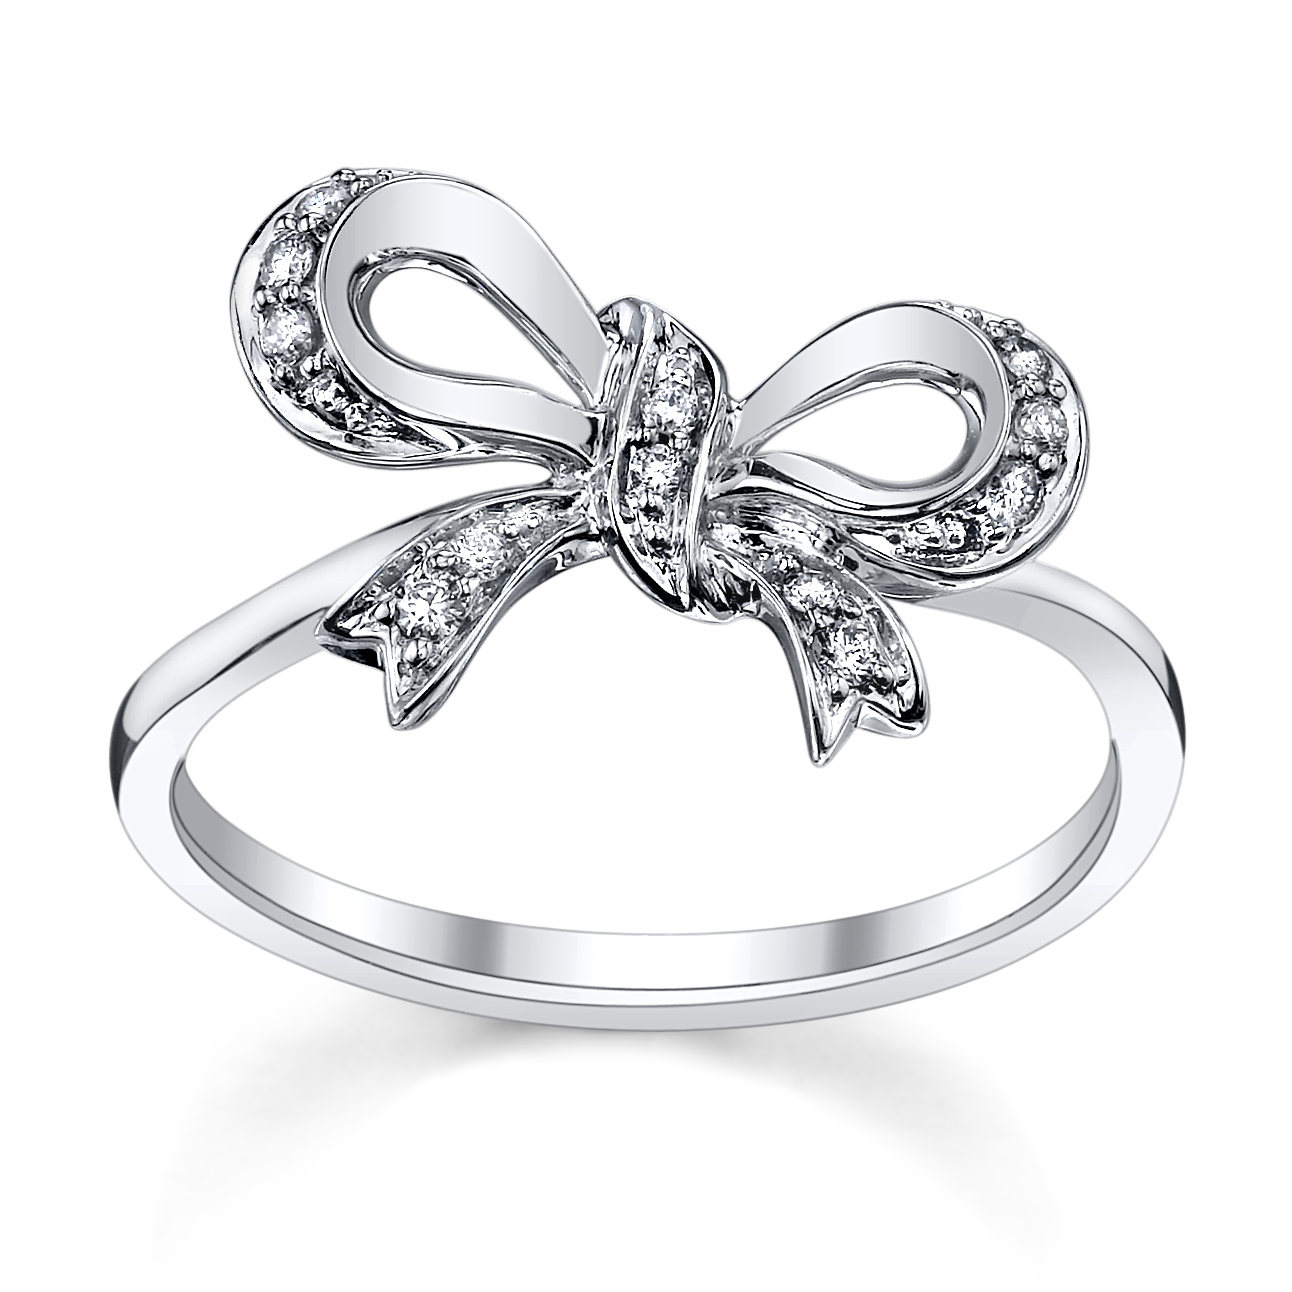 4 perfect heart bow diamond engagement rings for the. Black Bedroom Furniture Sets. Home Design Ideas